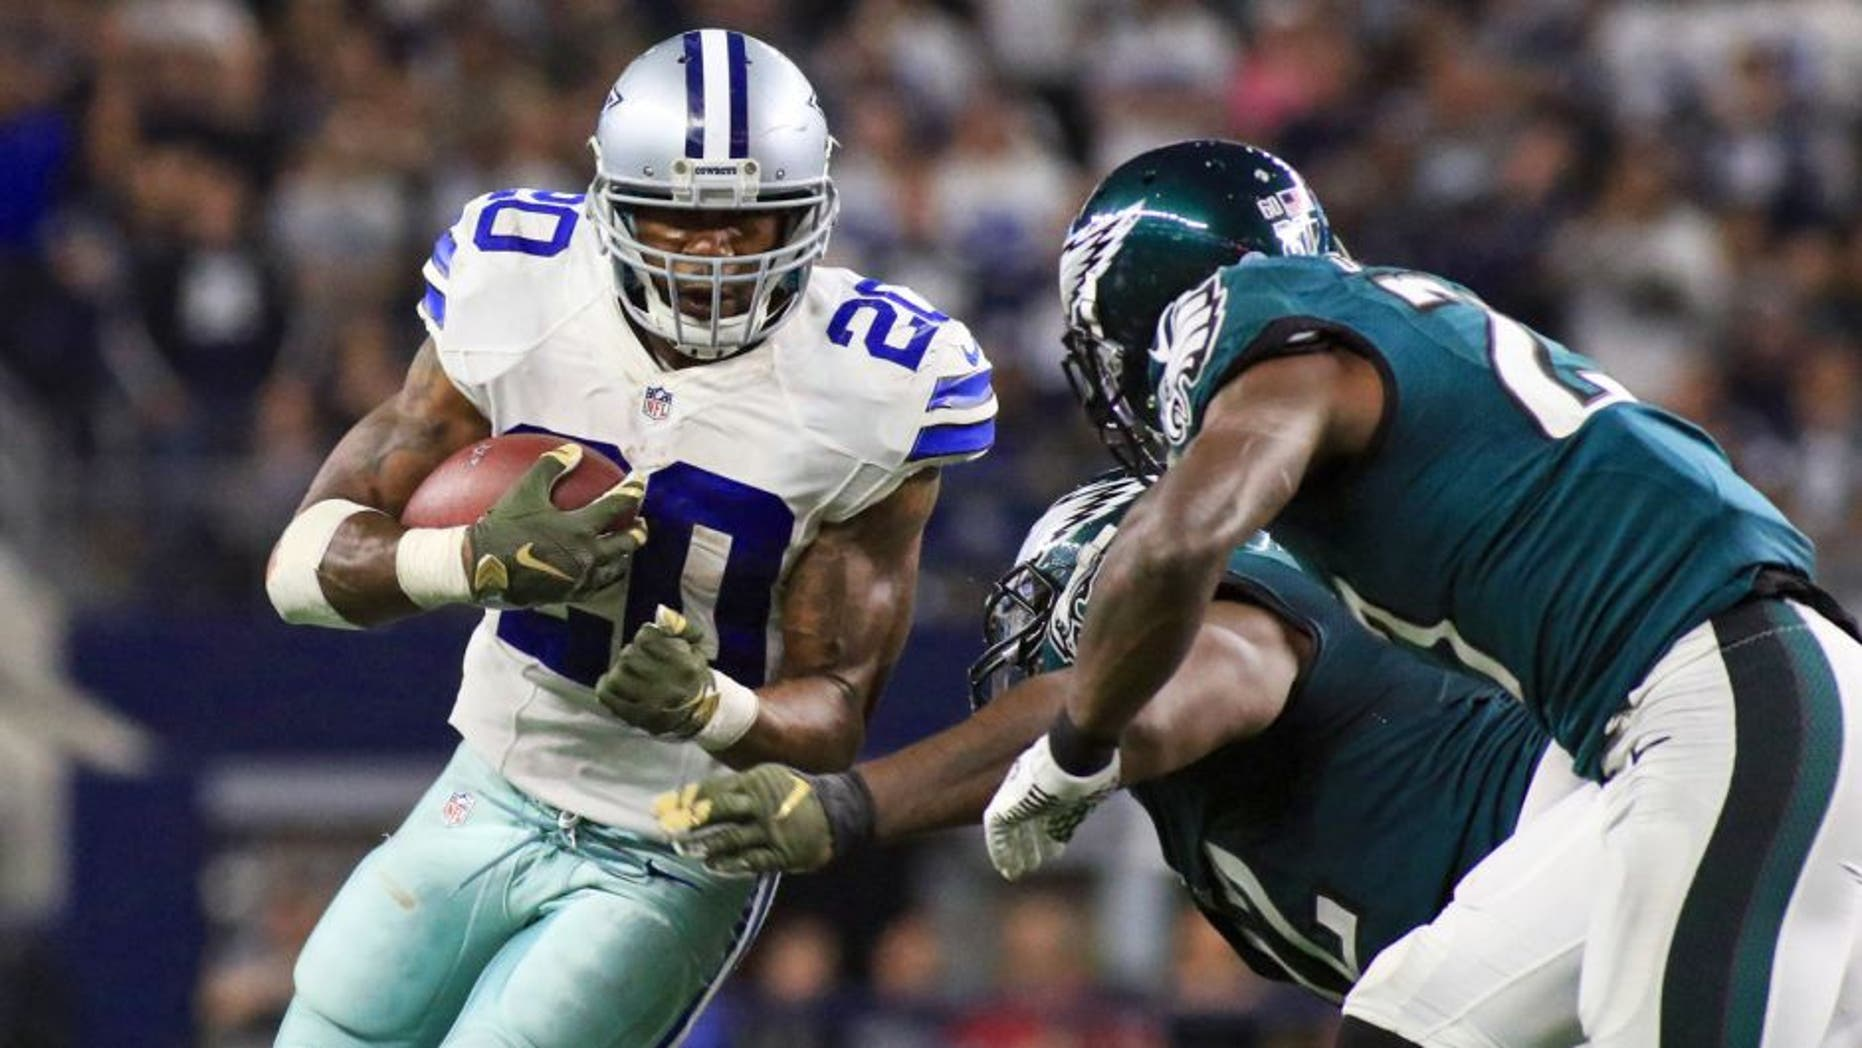 Nov 8, 2015; Arlington, TX, USA; Dallas Cowboys running back Darren McFadden (20) carries the ball against the Philadelphia Eagles during the second half of a game at AT&T Stadium. Mandatory Credit: Ray Carlin-USA TODAY Sports